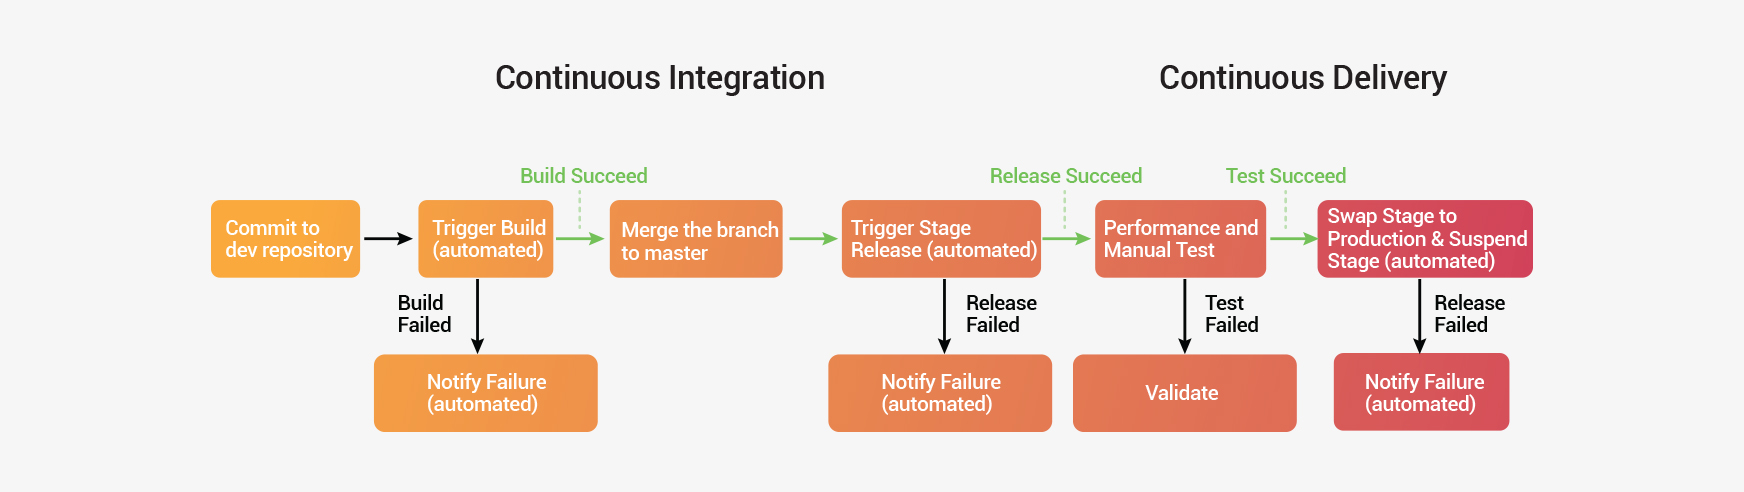 Practical Implementation of DevOps Step by Step